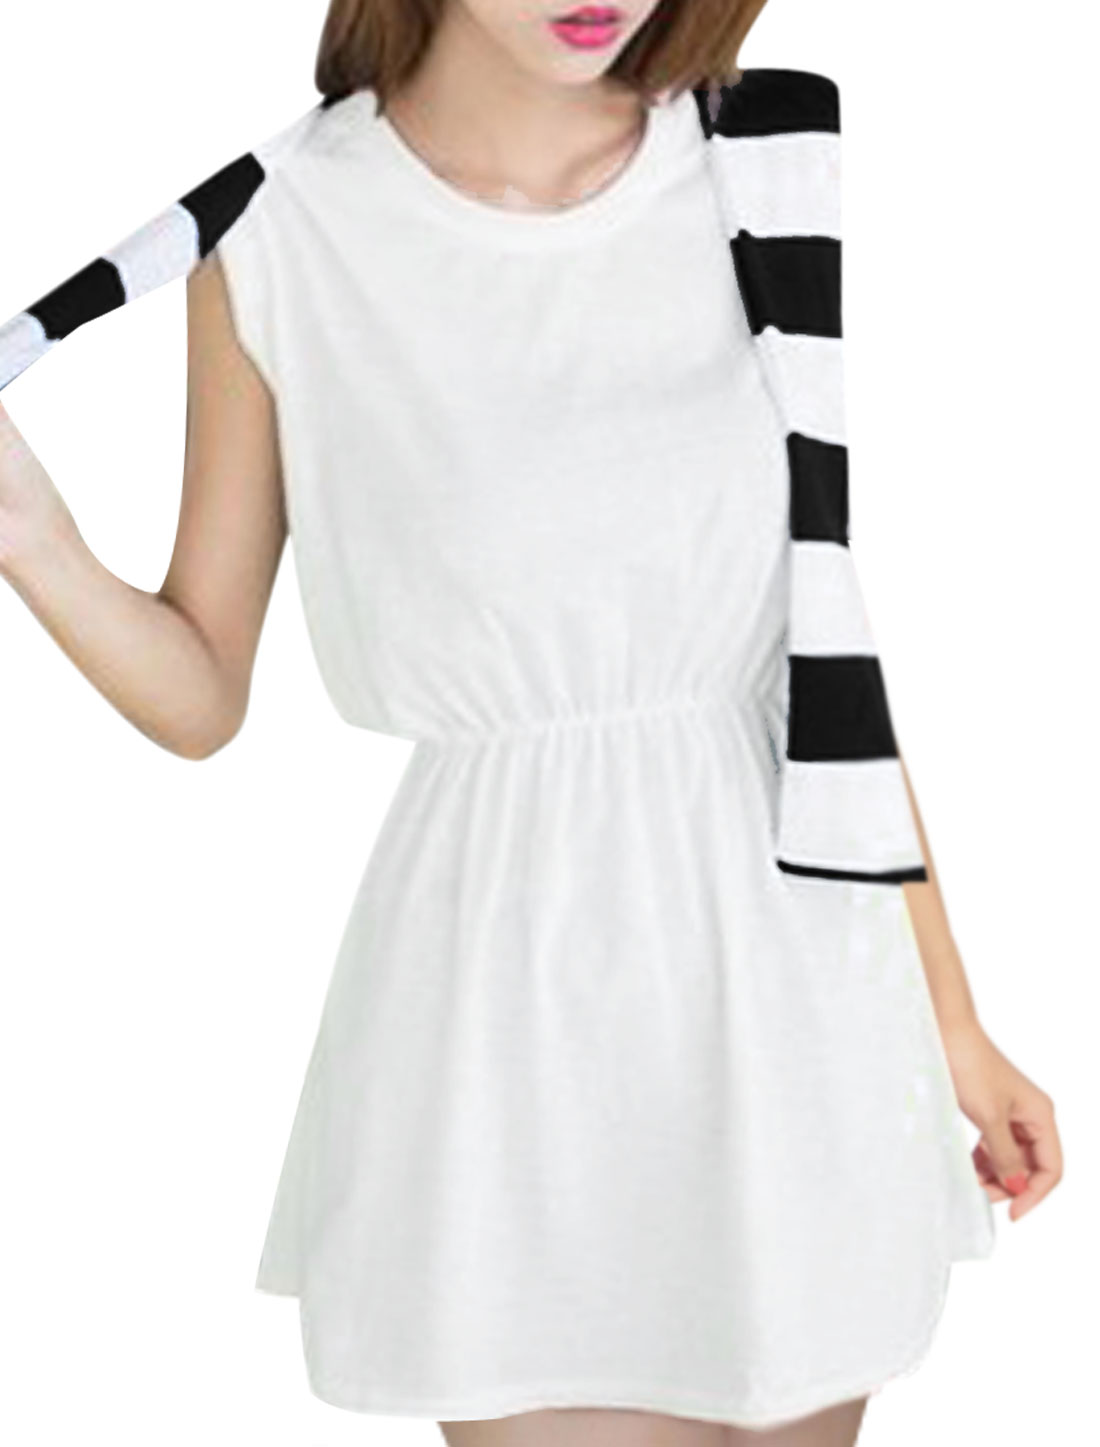 Women's Round Neck Sleeveless Fake Two Pieces Elastic Waist White XS Dress